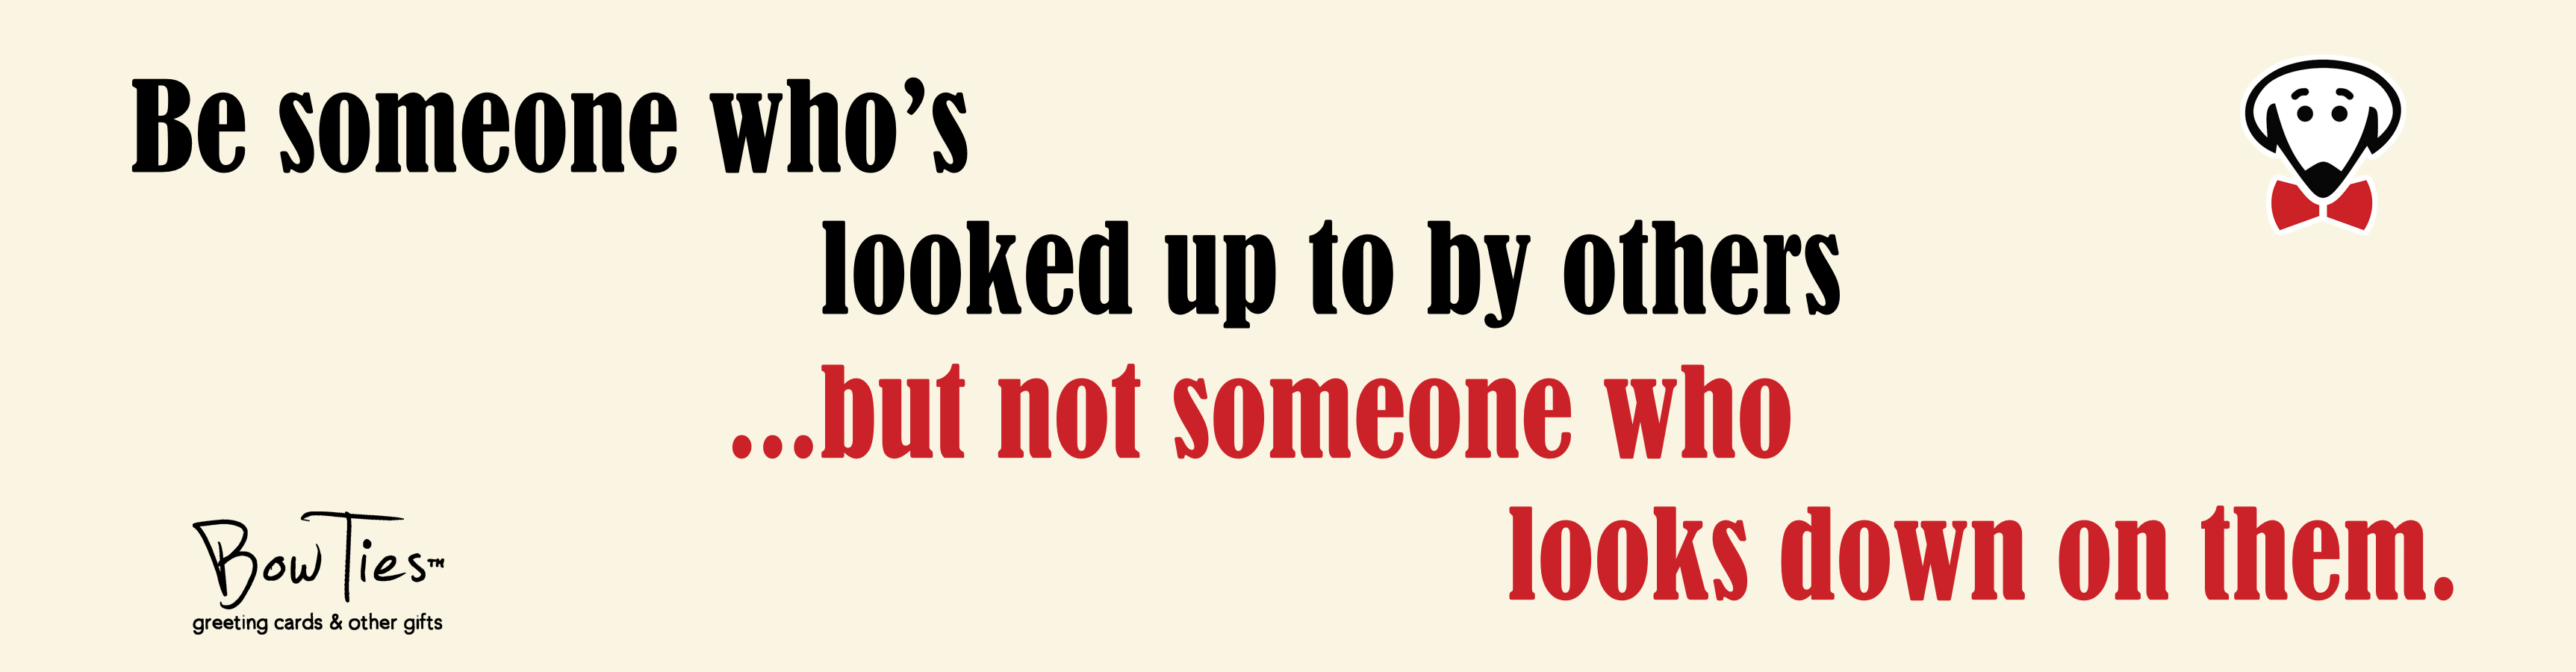 Be someone who's looked up to by others…but not someone who looks down on them. – sticker